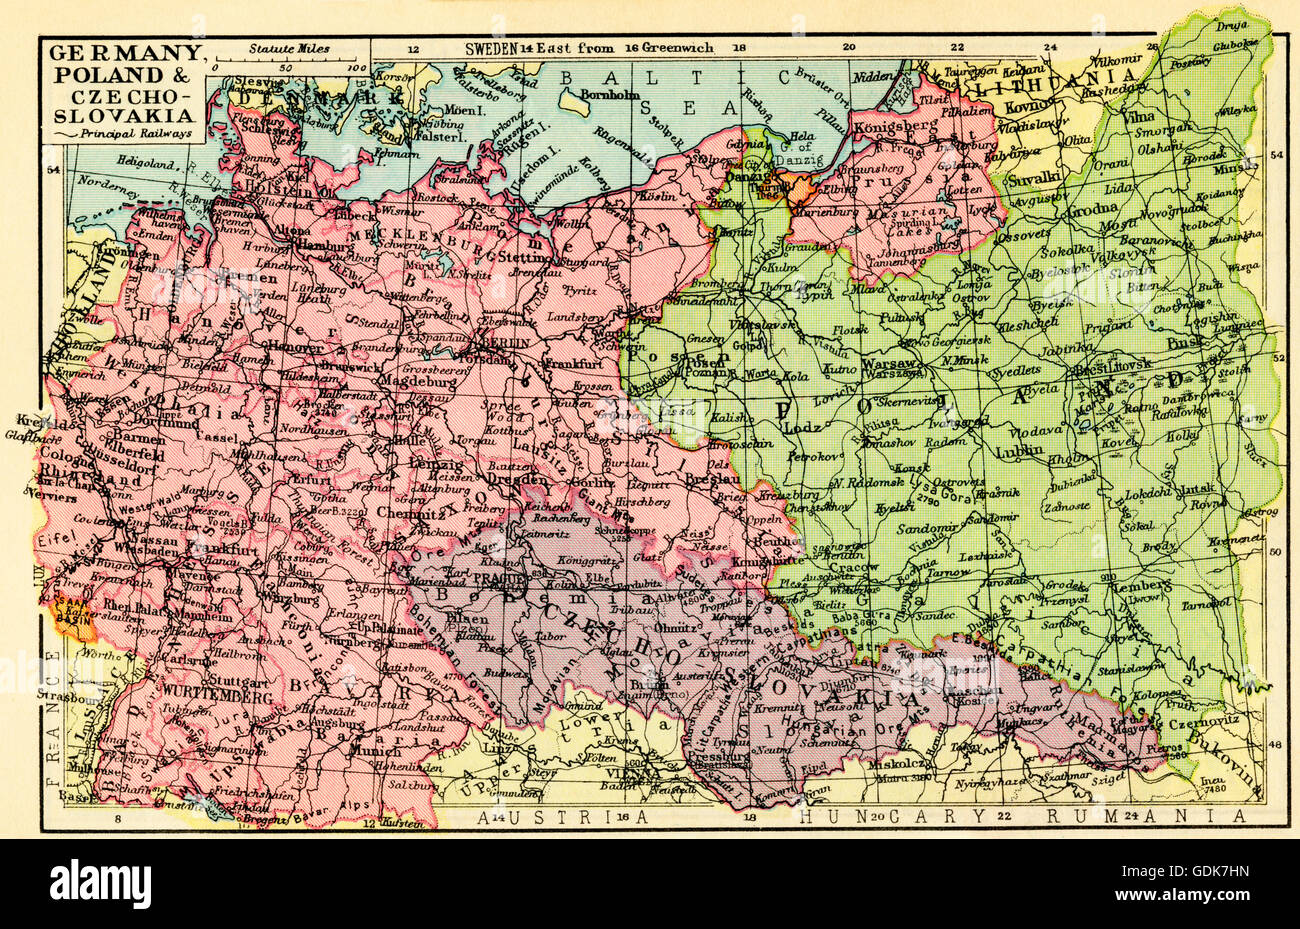 Map Of Germany And Czechoslovakia.A 1930 S Map Of Germany Poland And Czechoslovakia Stock Photo